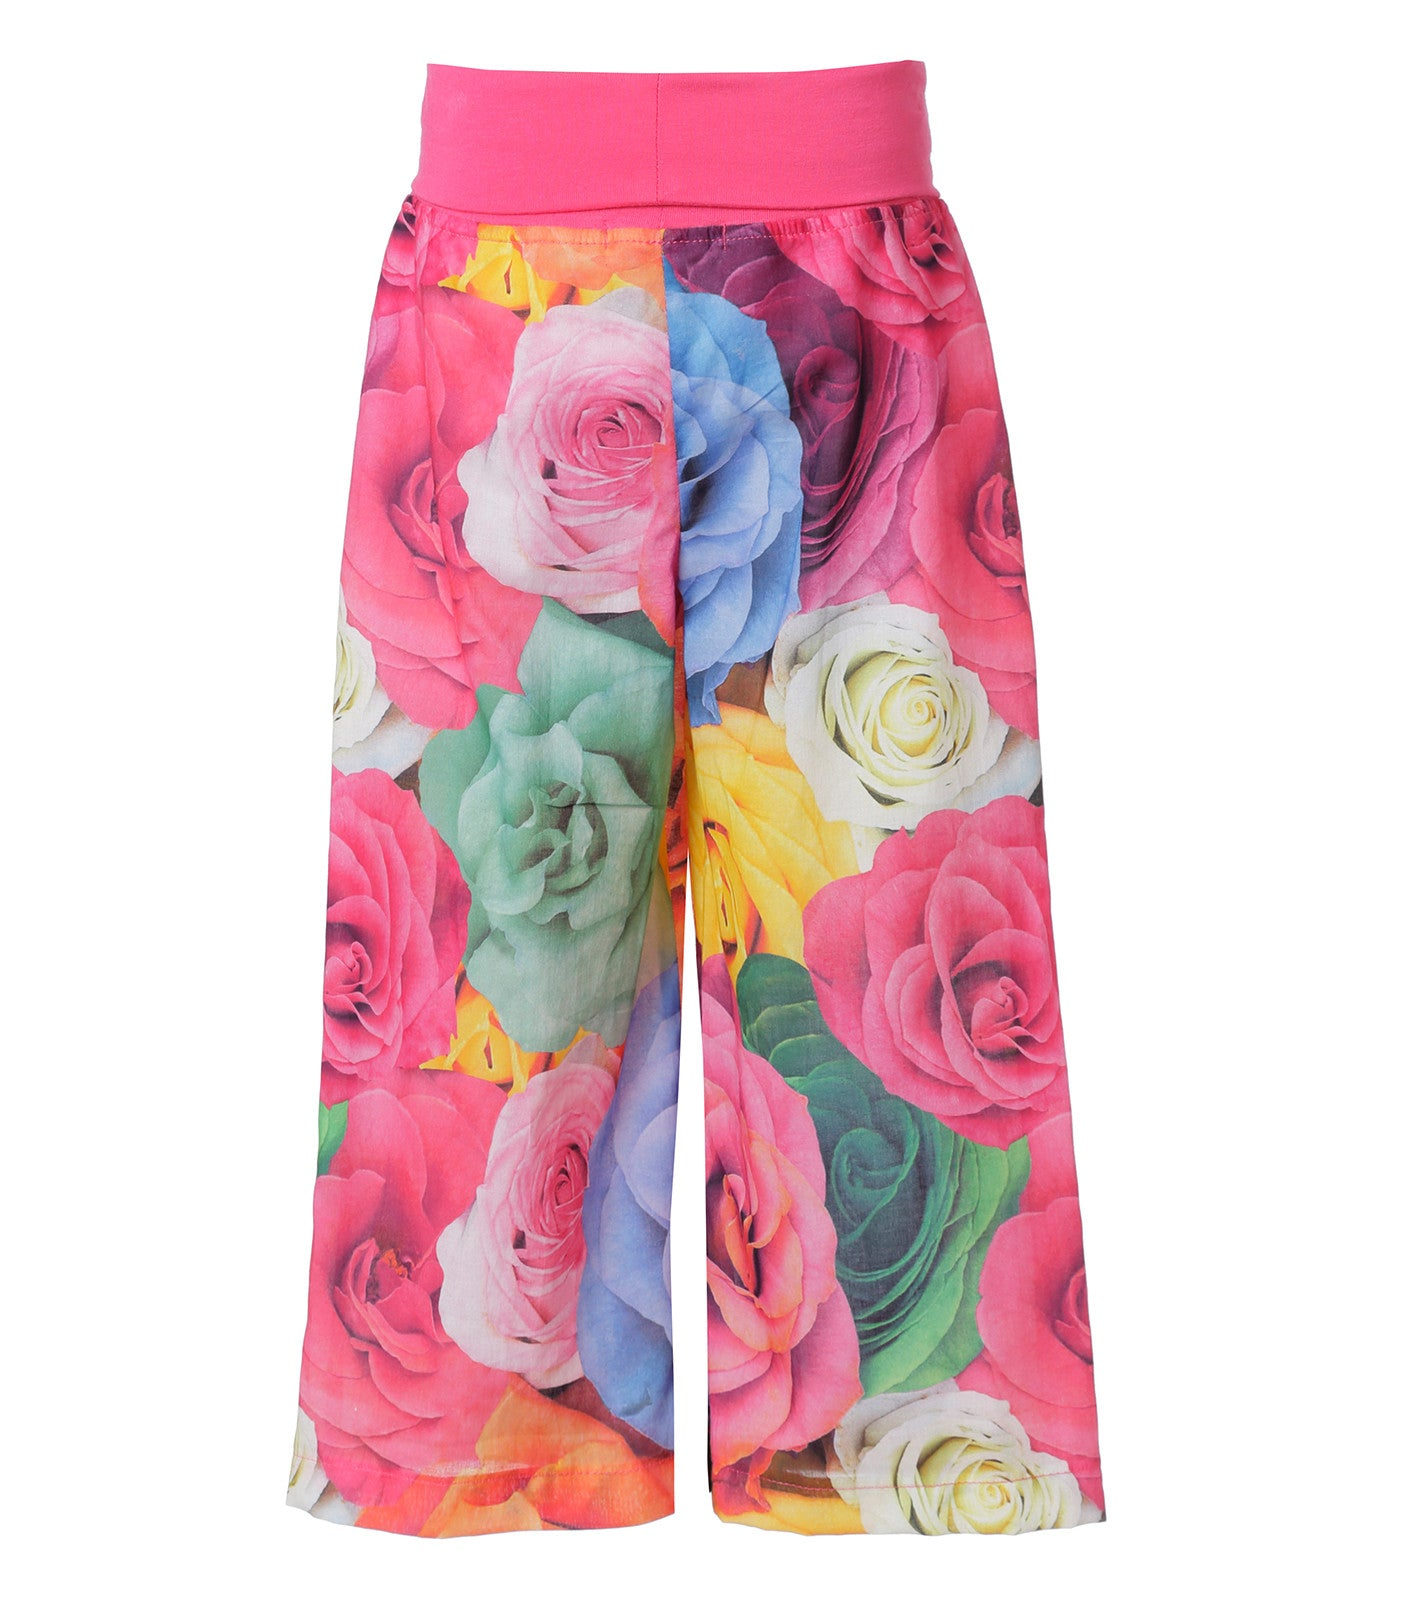 Girls Pants with Striking Floral Pattern